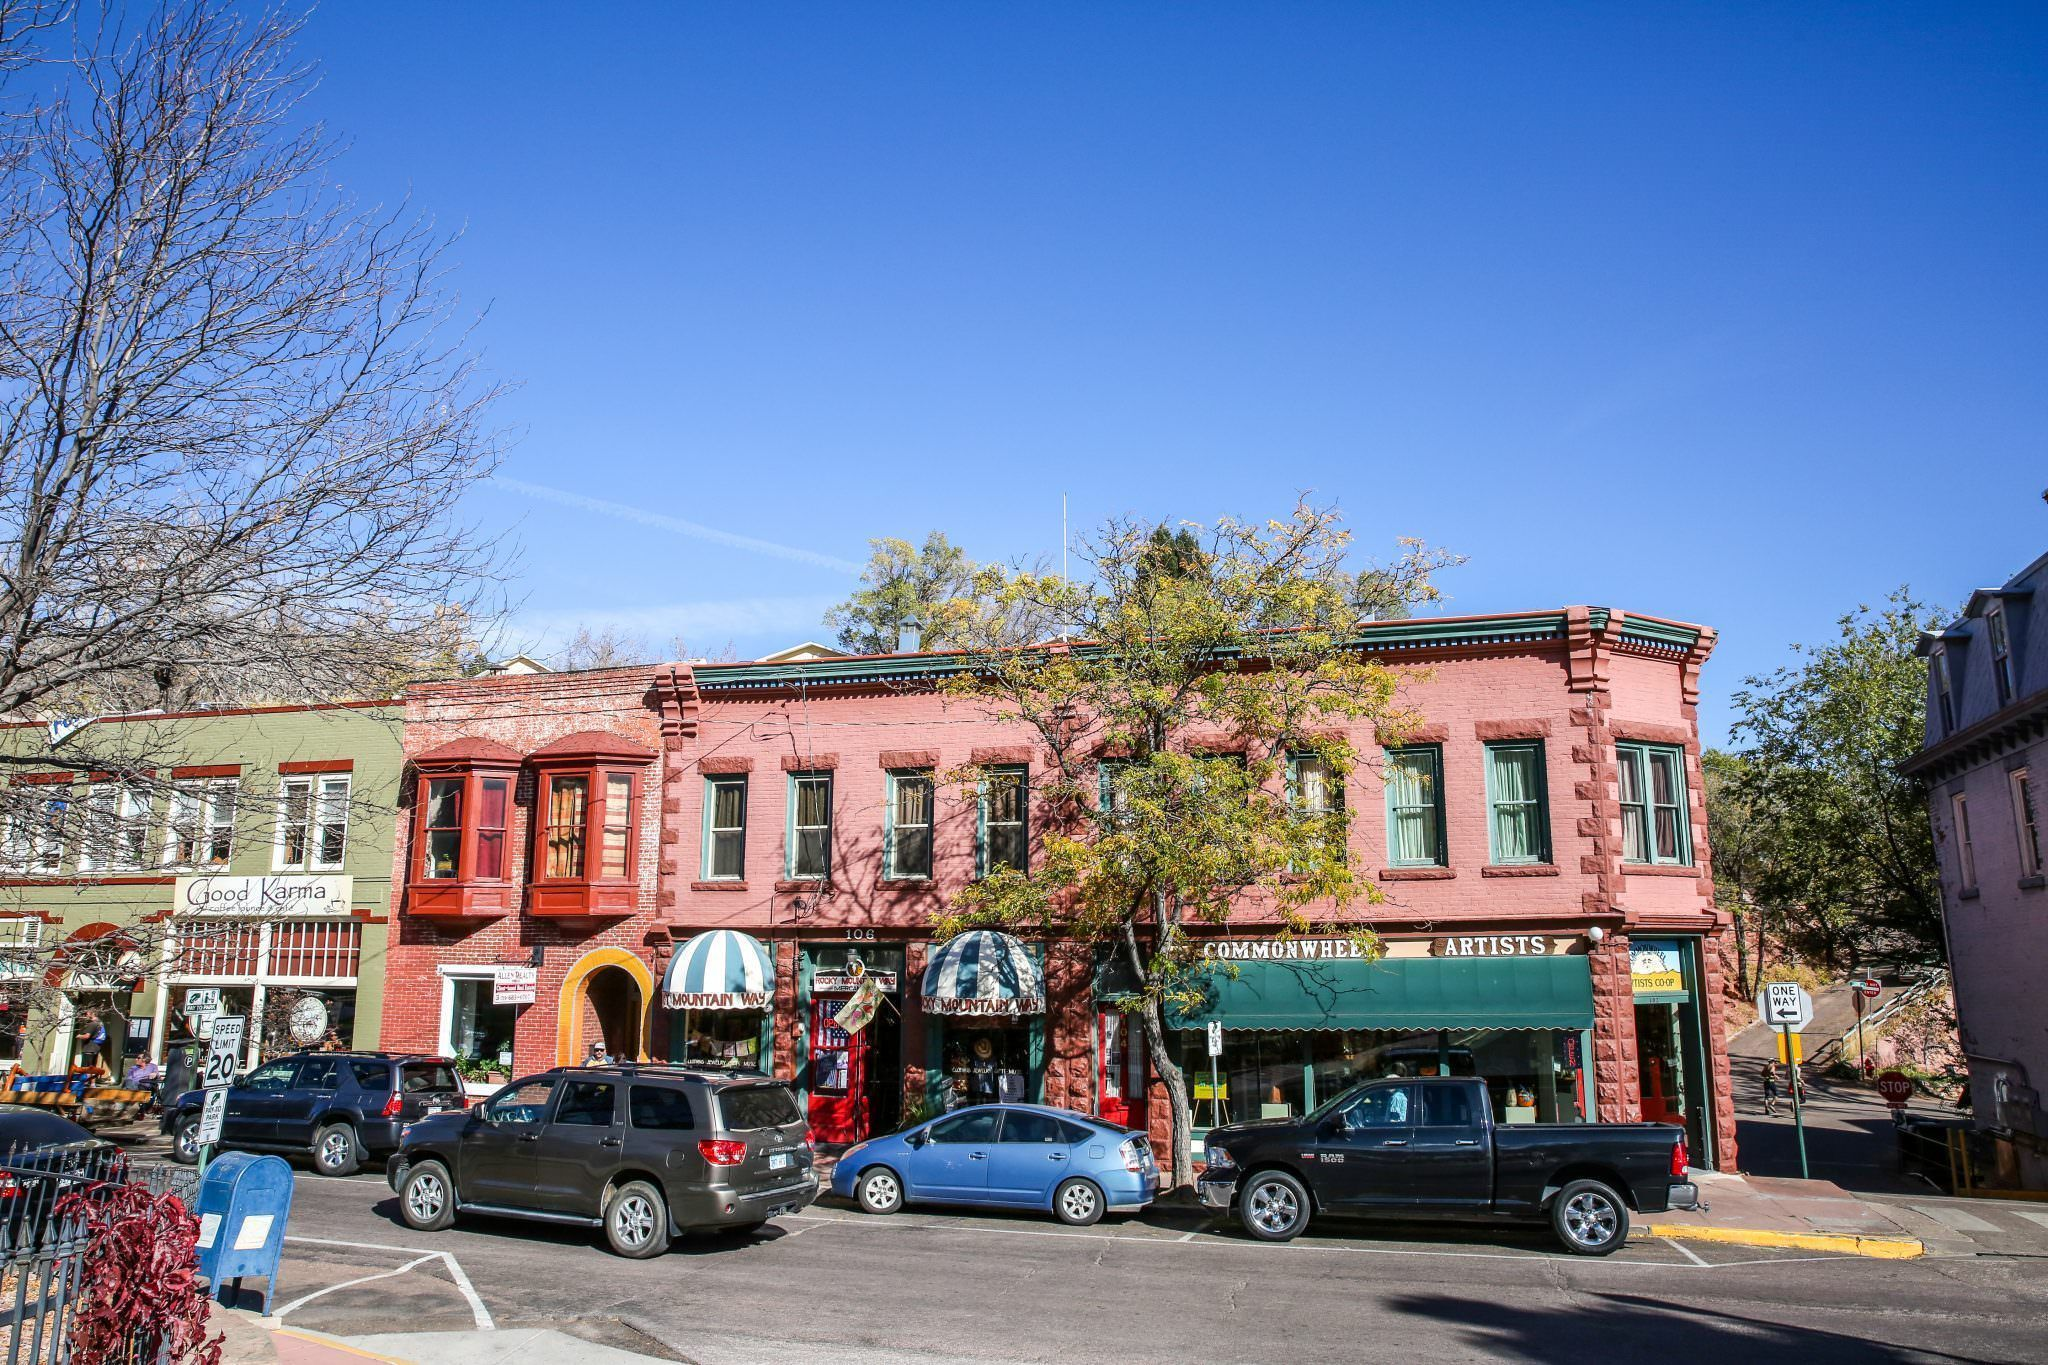 10 Things To Do in Manitou Springs #manitousprings 10 Things To Do in Manitou Springs #manitousprings 10 Things To Do in Manitou Springs #manitousprings 10 Things To Do in Manitou Springs #manitousprings 10 Things To Do in Manitou Springs #manitousprings 10 Things To Do in Manitou Springs #manitousprings 10 Things To Do in Manitou Springs #manitousprings 10 Things To Do in Manitou Springs #manitousprings